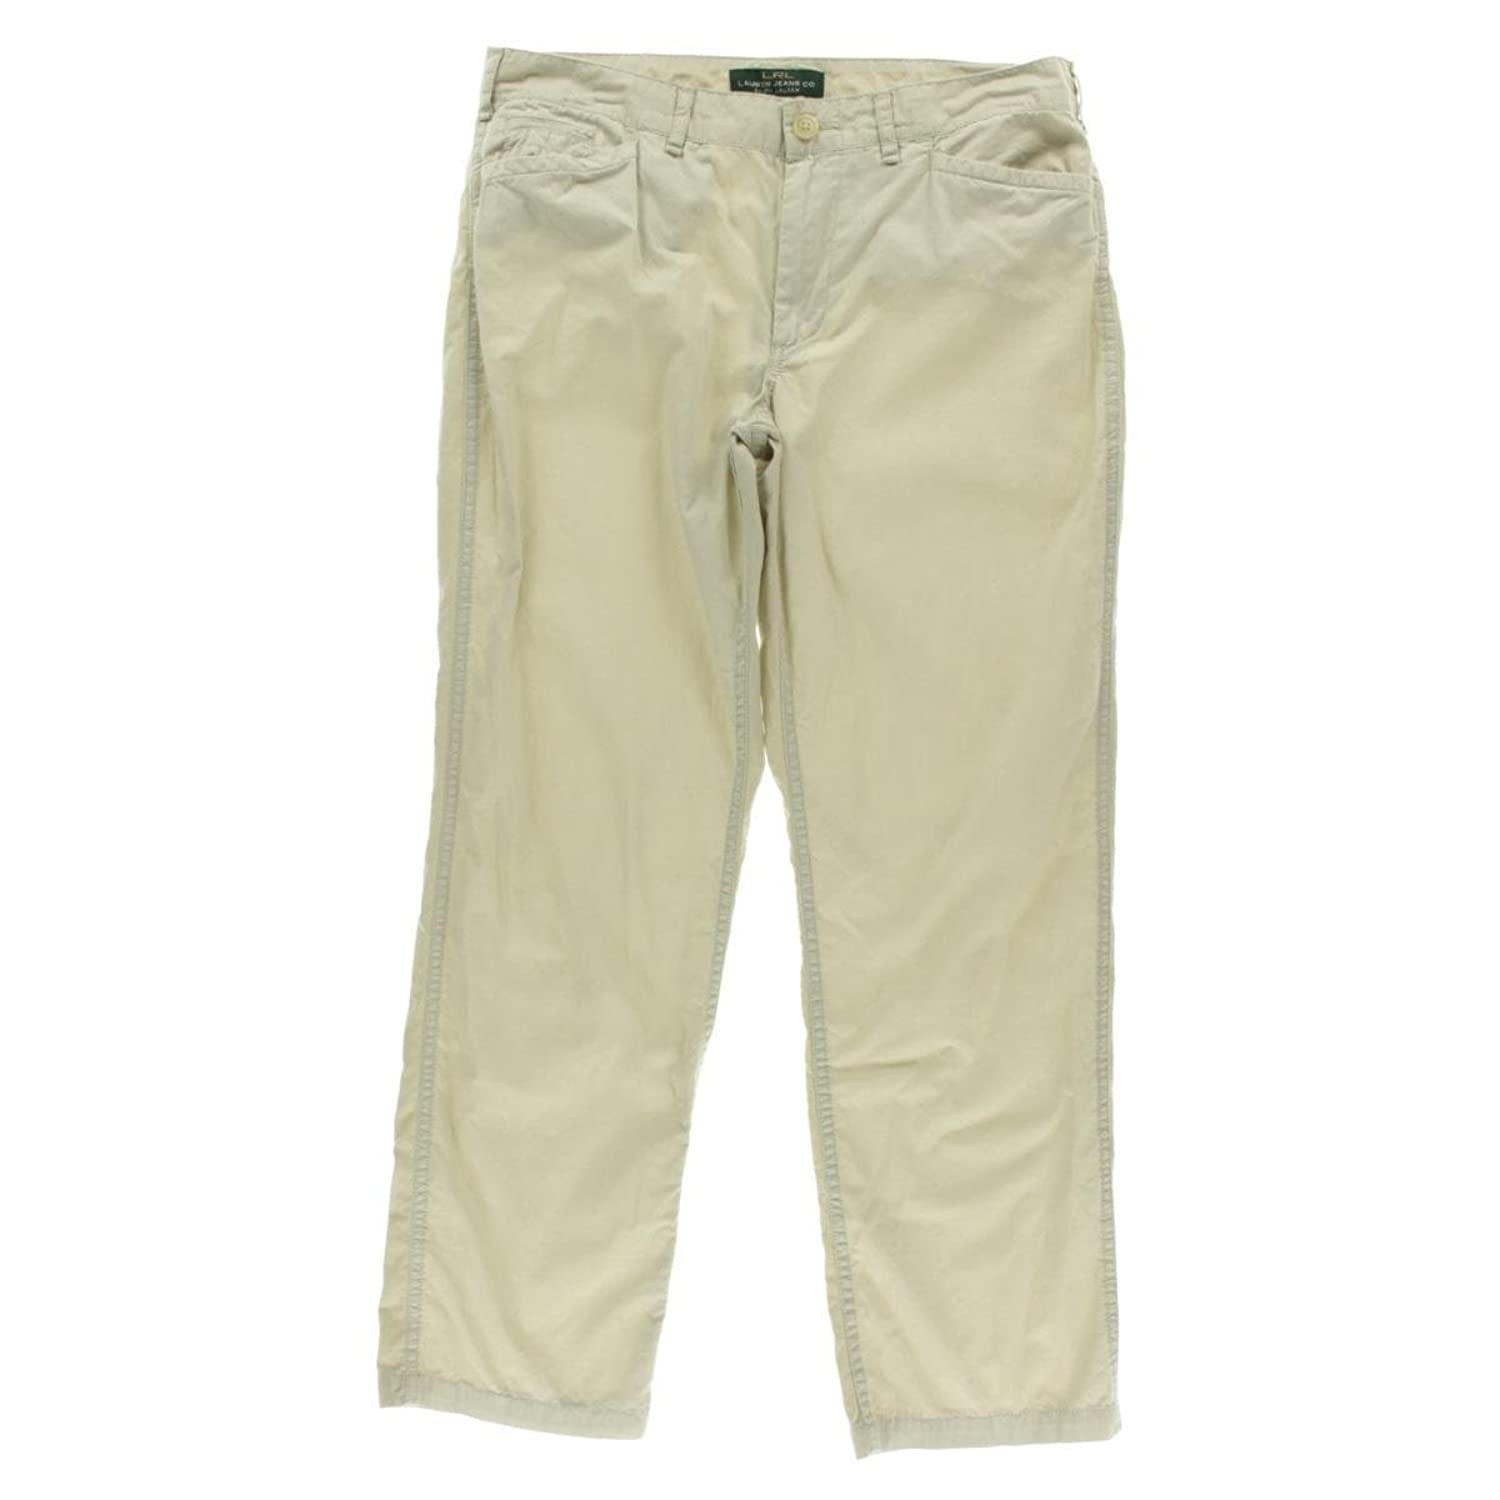 Lauren Jeans Co. Cuffed Chino Pants Stone 12